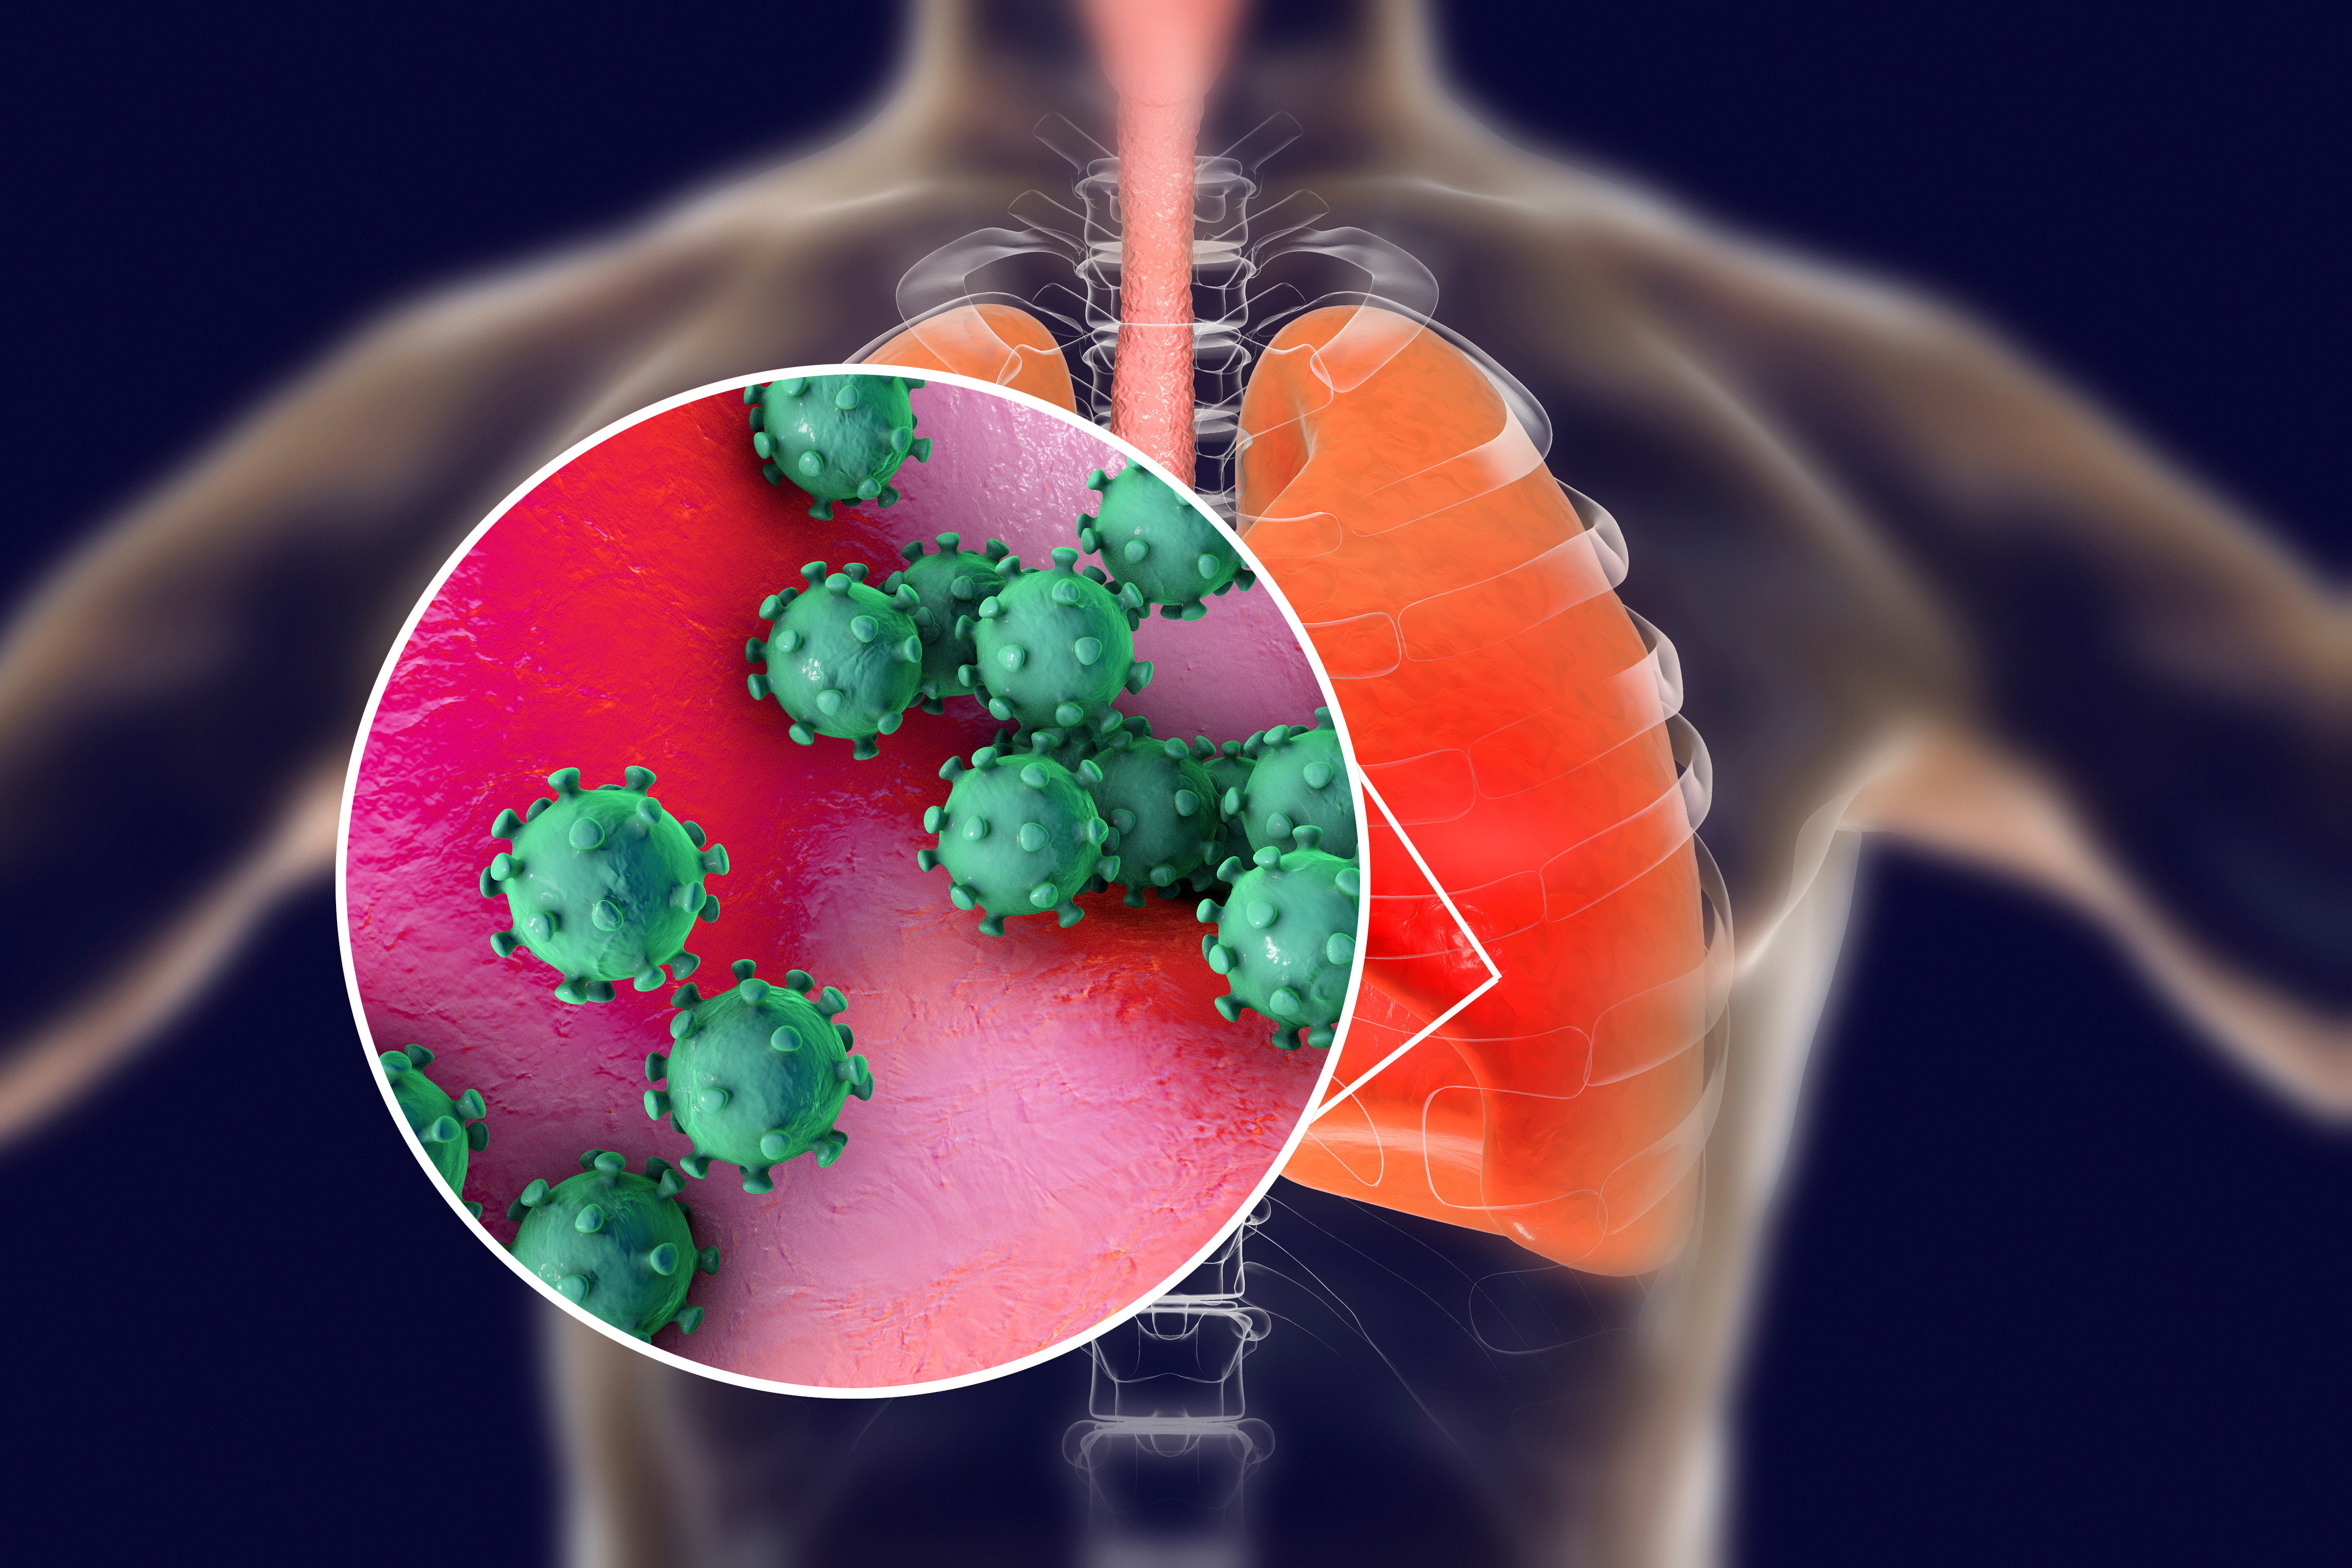 Coronavirus could pose a threat for those with asthma, stock image shows viral pneumonia in the lungs